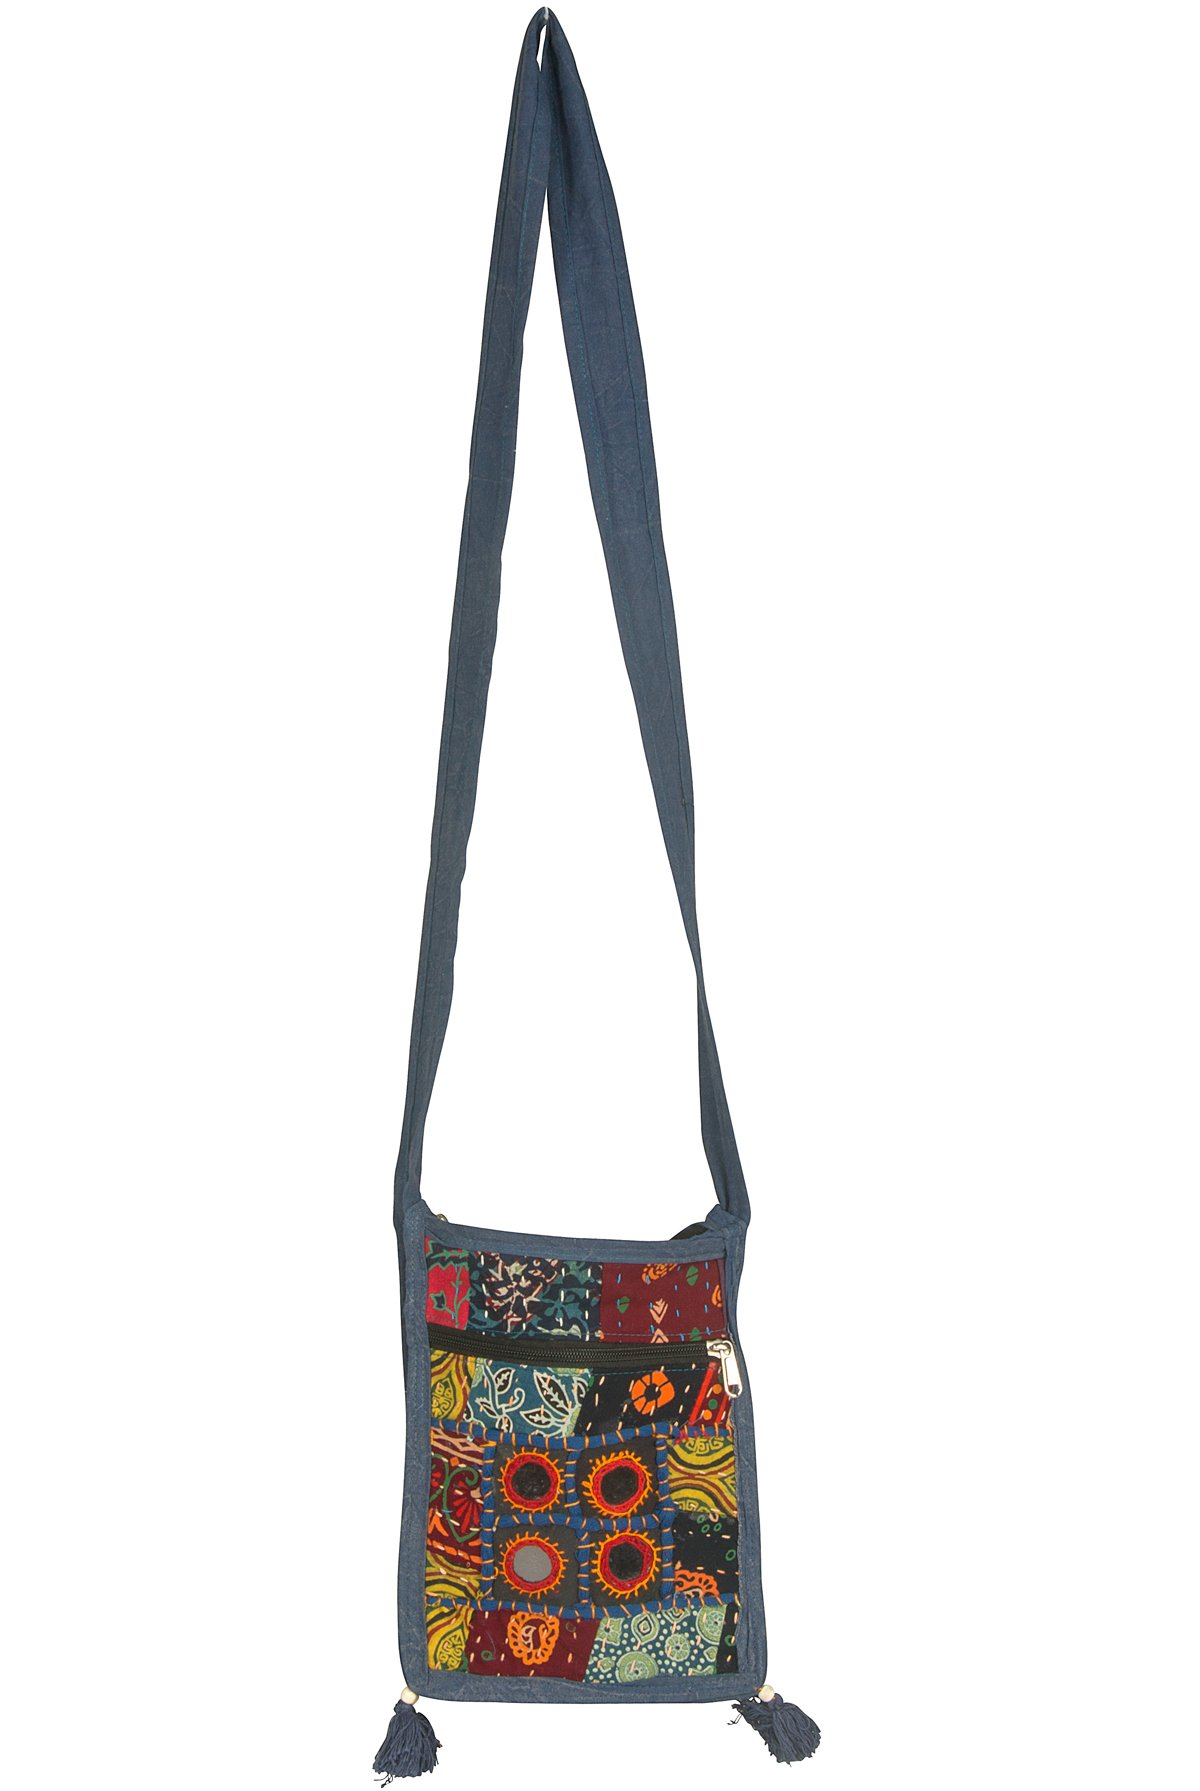 Small Messenger Crossbody Satchel Shoulder Bag Floral Purse Colorful Organizer Cellphone Ipad Hobo (Mirror Patchwork) by Tribe Azure Fair Trade (Image #4)